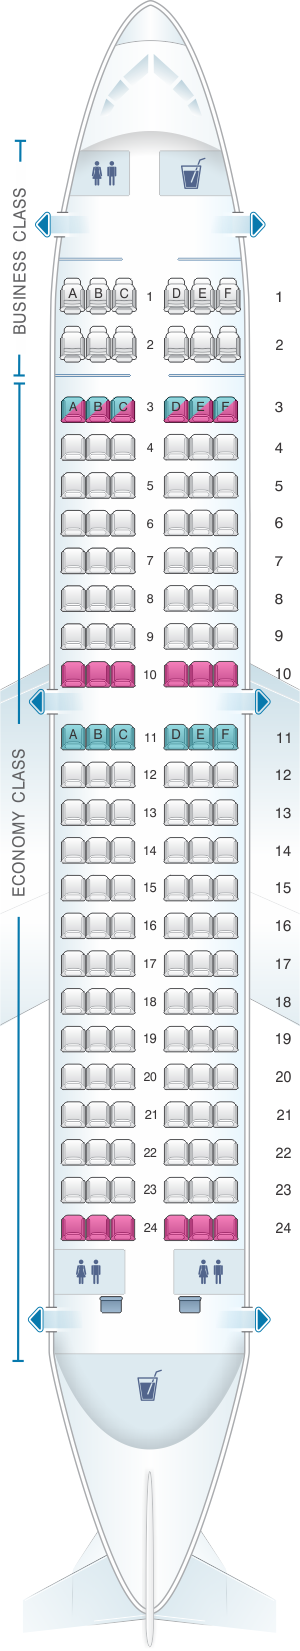 Seat map for Air Serbia Airbus A319